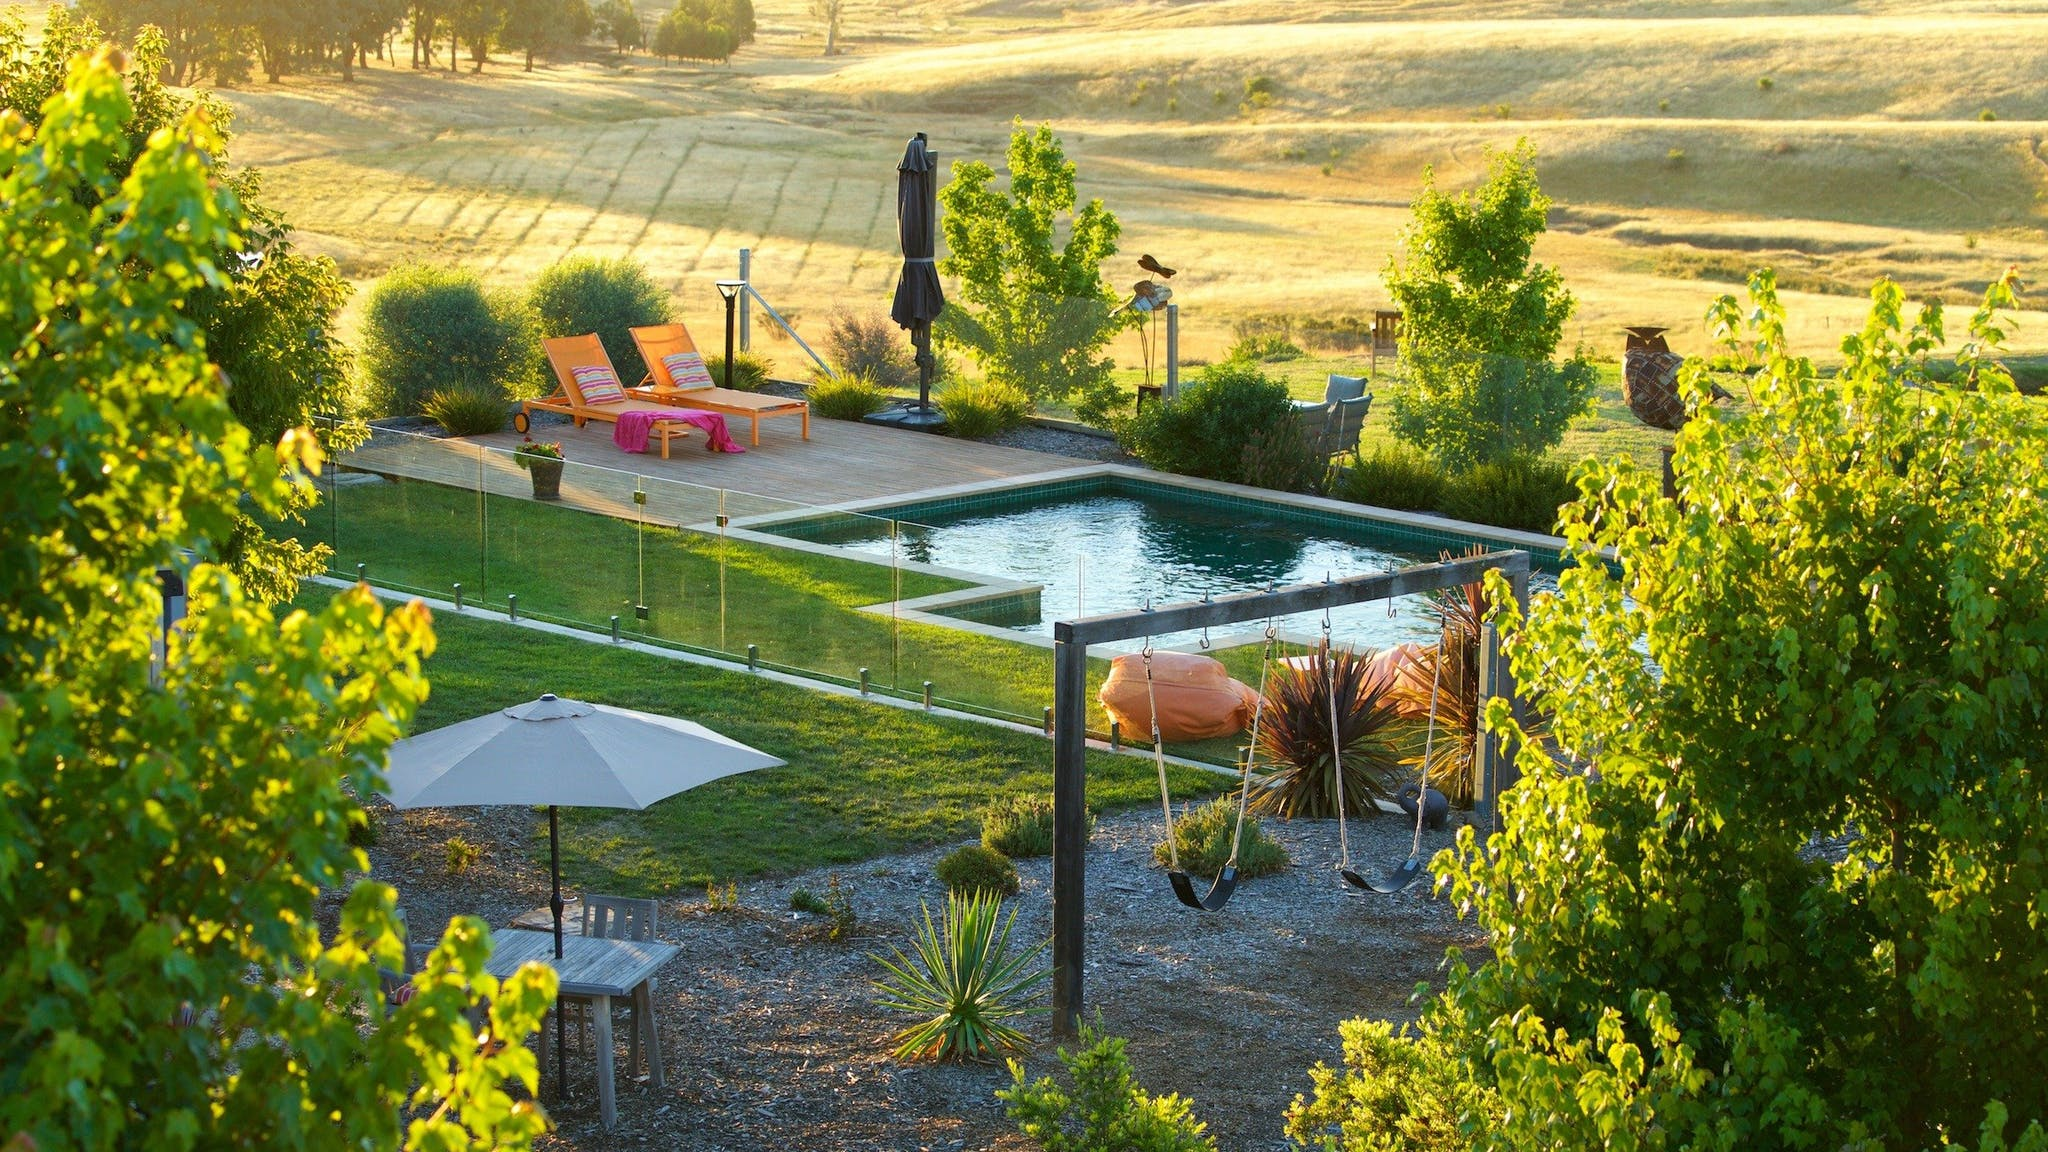 187 merrijig accommodation high country victoria australia - Can babies swim in saltwater pools ...